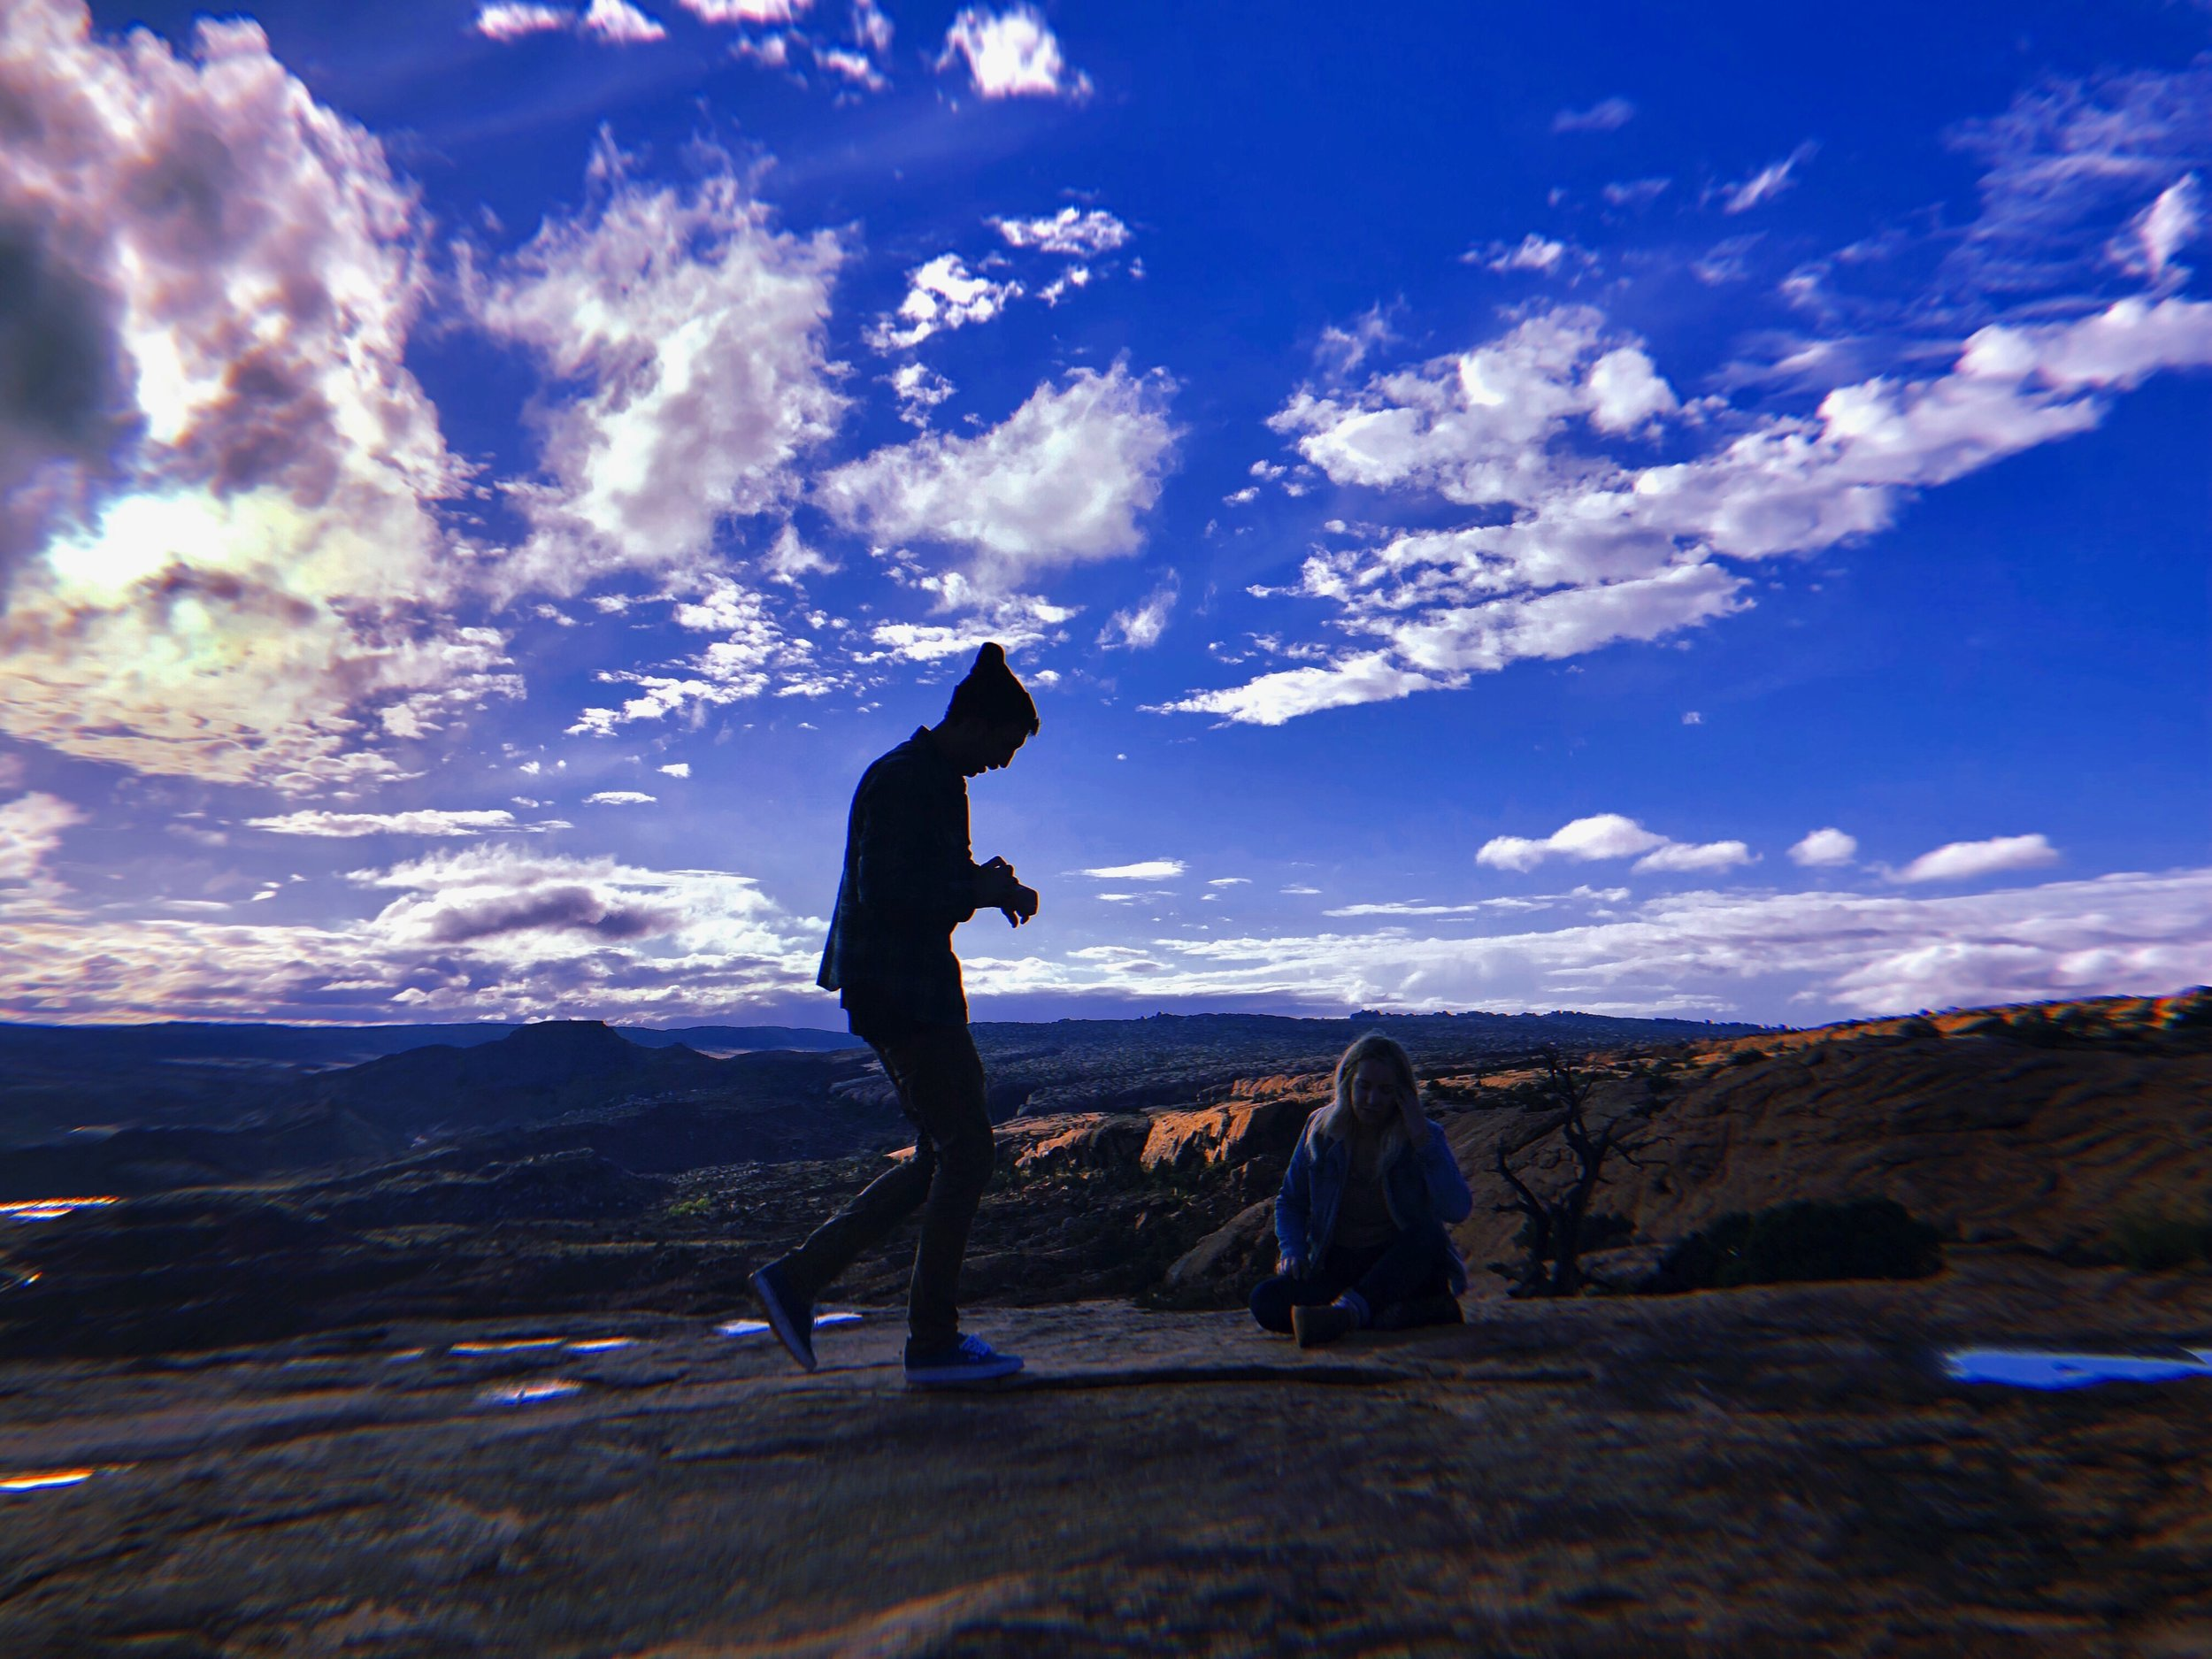 Arches National Park - Utah - Fall 2018 - Honeymooners